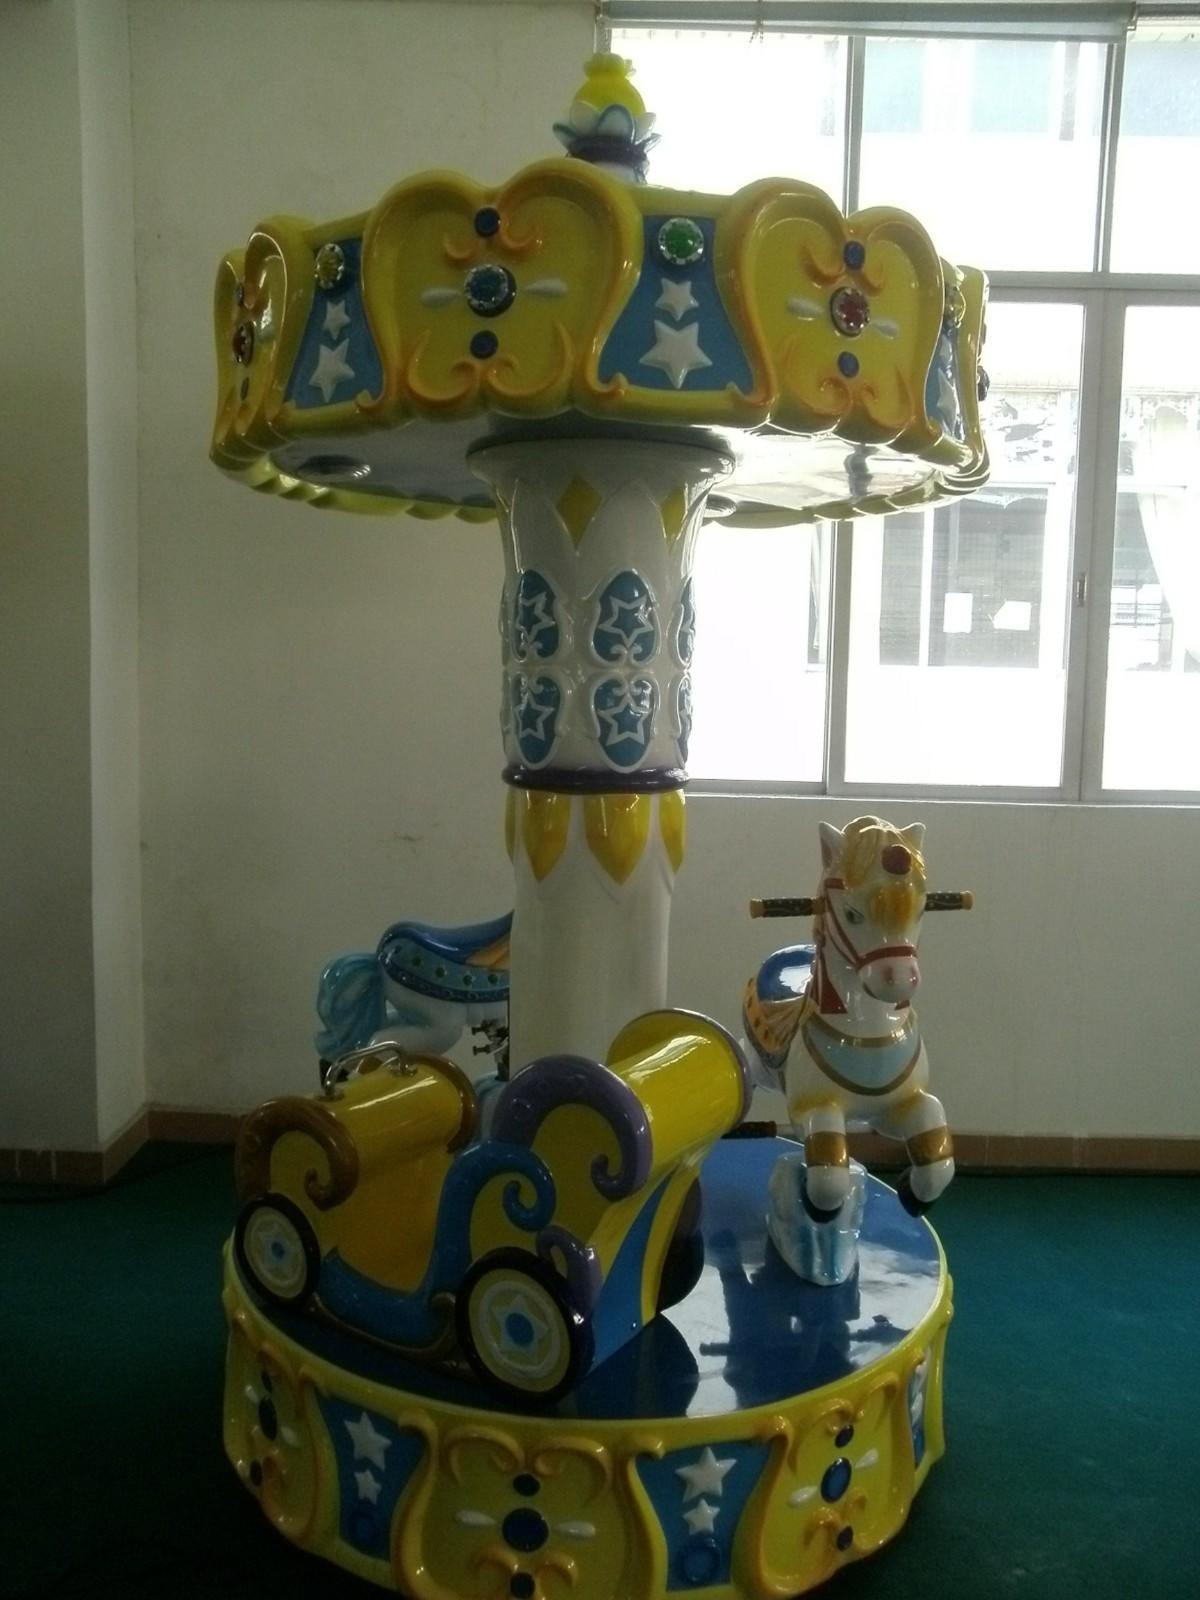 LETIAN horses carousel for kids design fairground-2